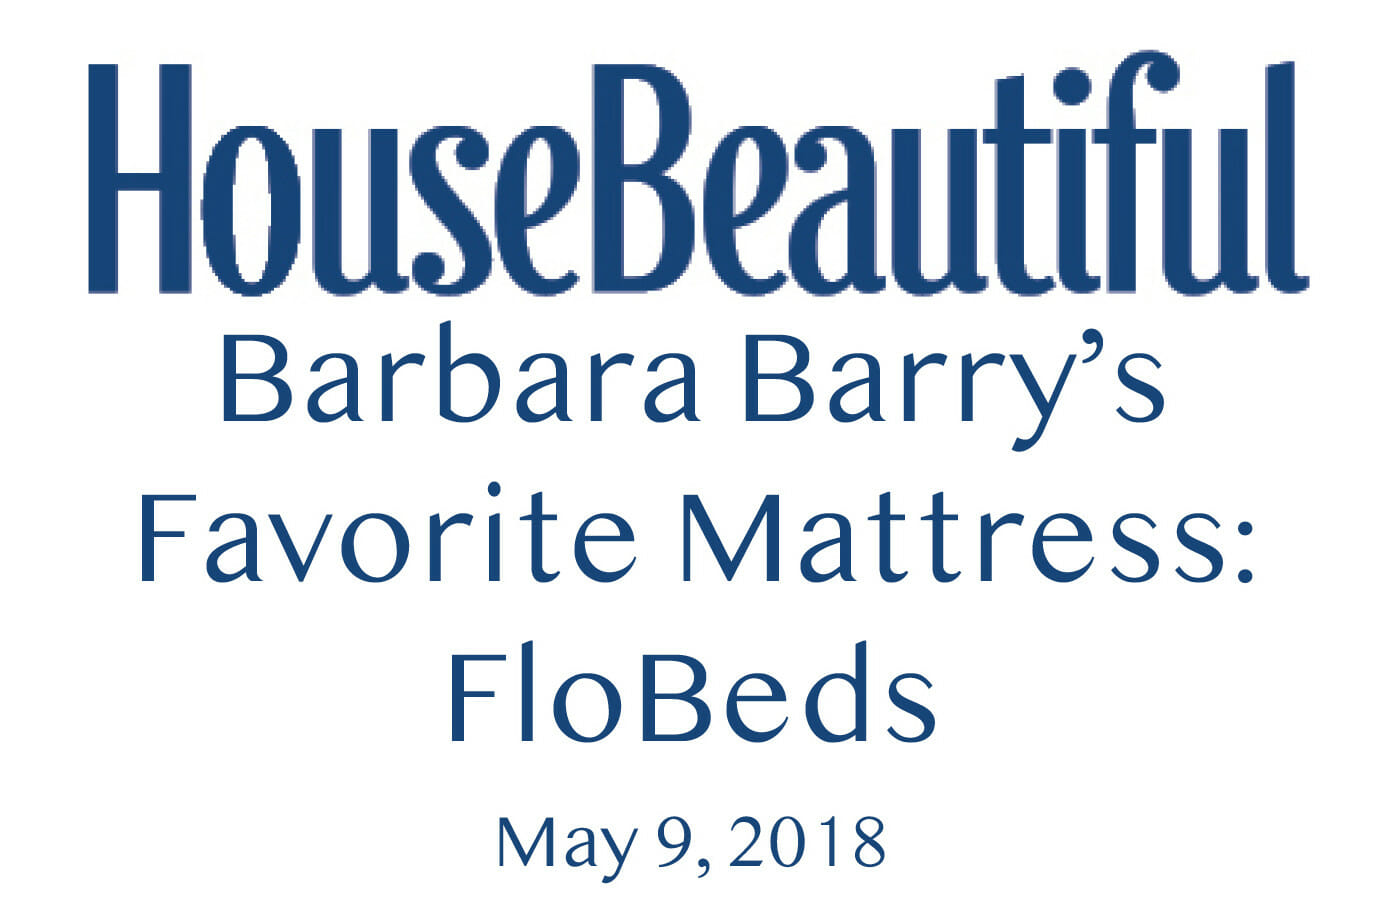 Barbara Barry - House Beautiful